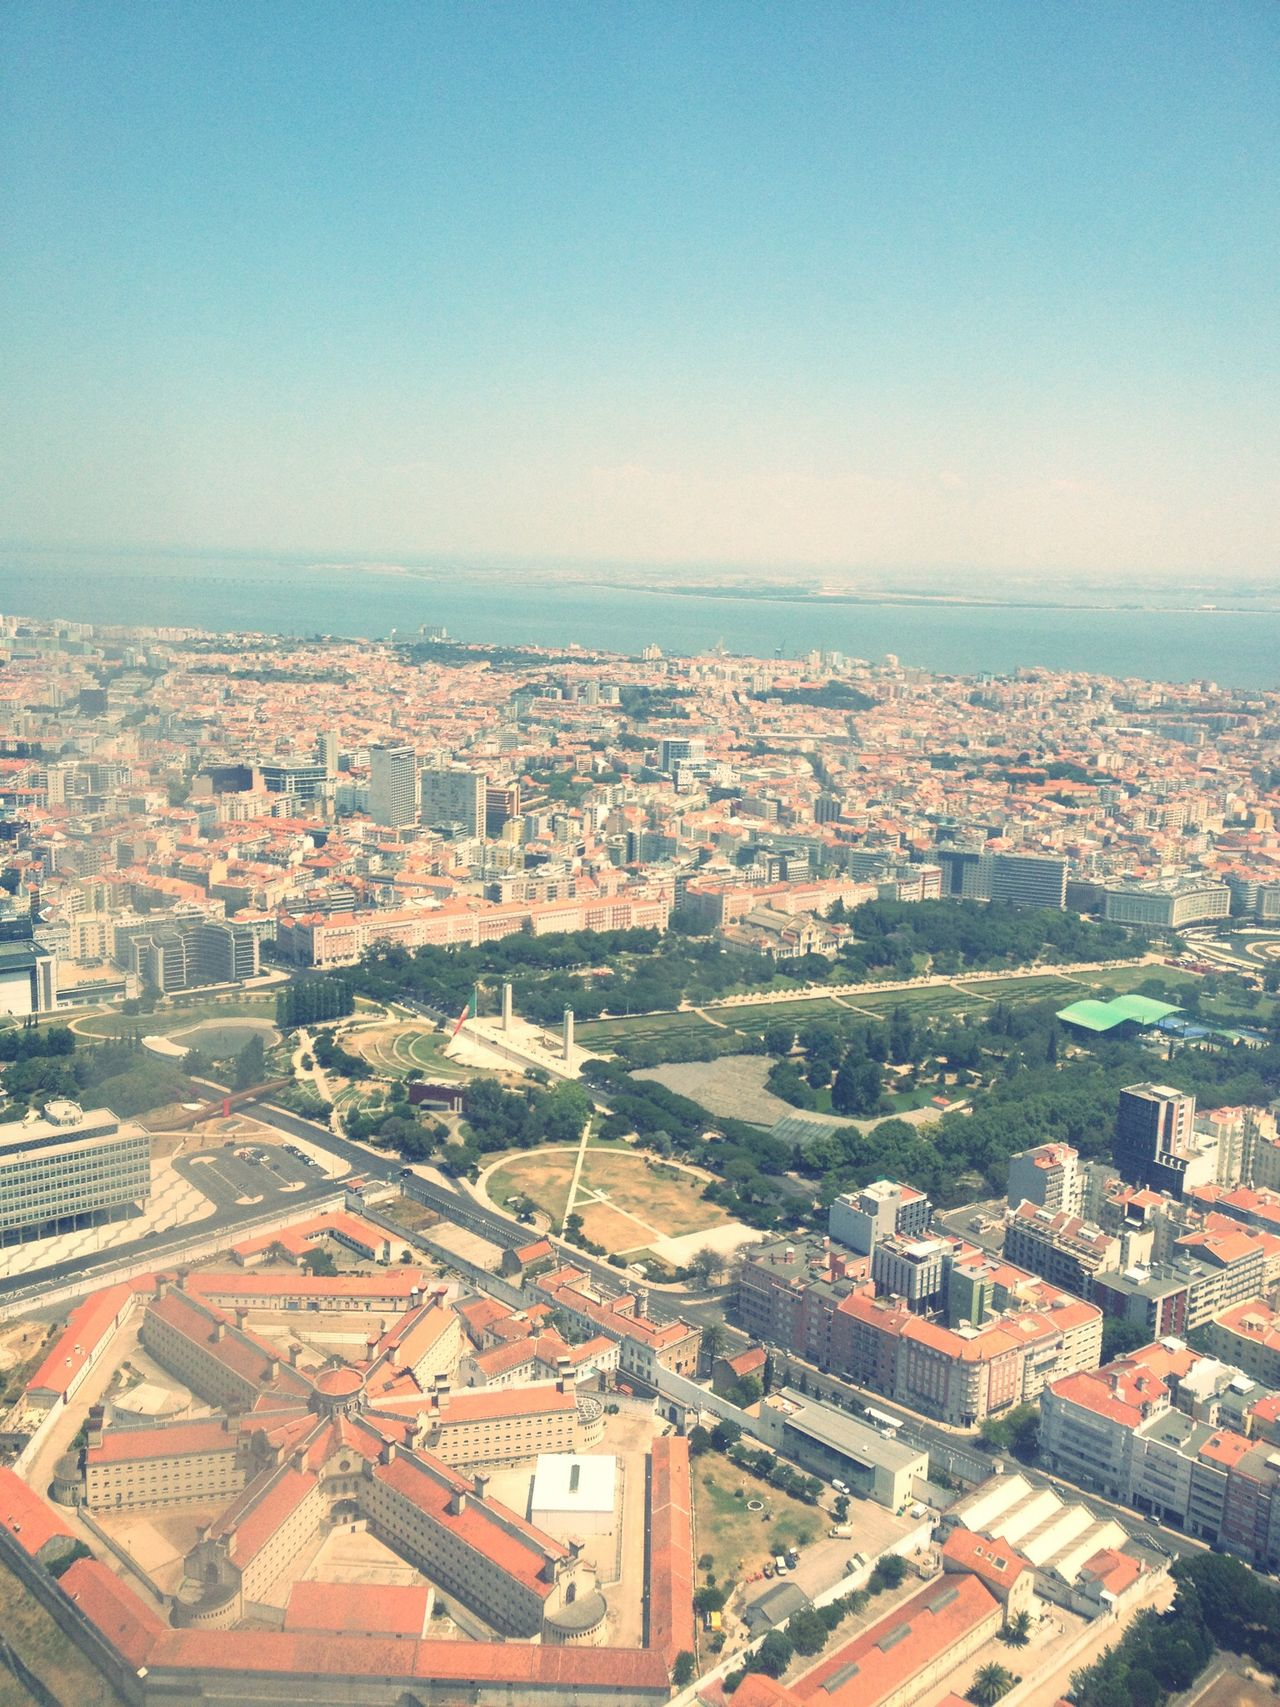 Just before landing at Lisbon airport! Portugal From An Airplane Window